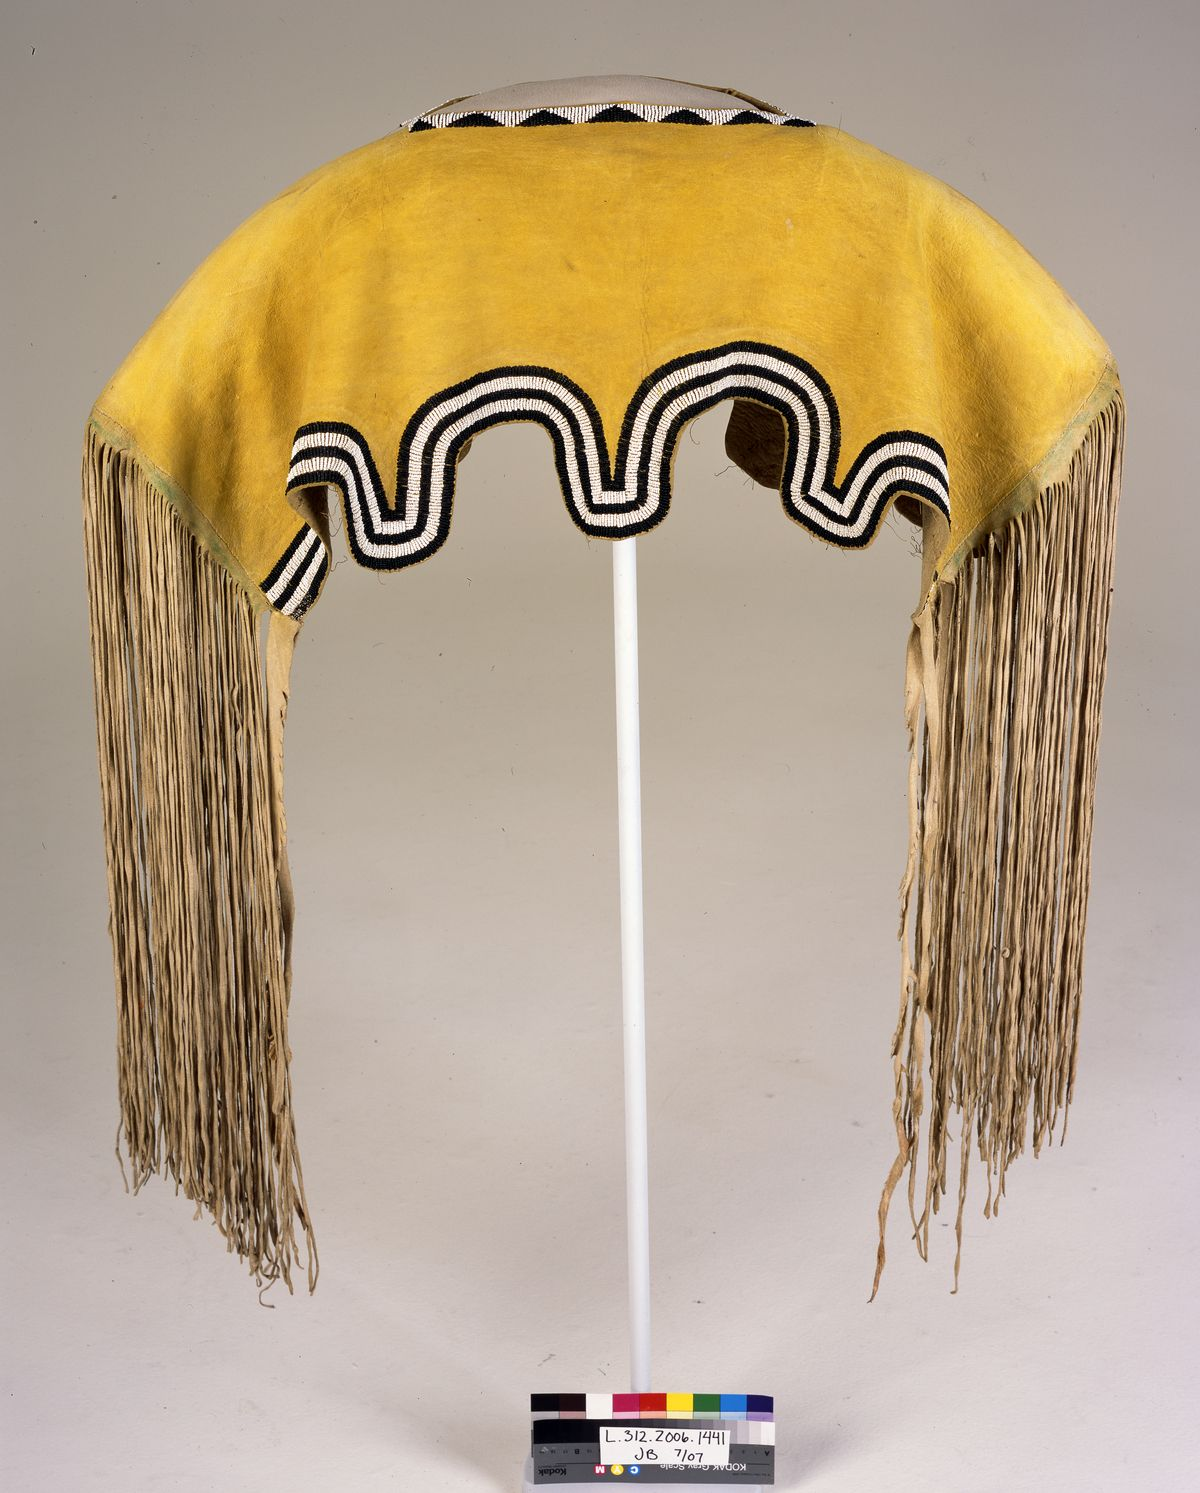 Na buffalo bill online collections search native